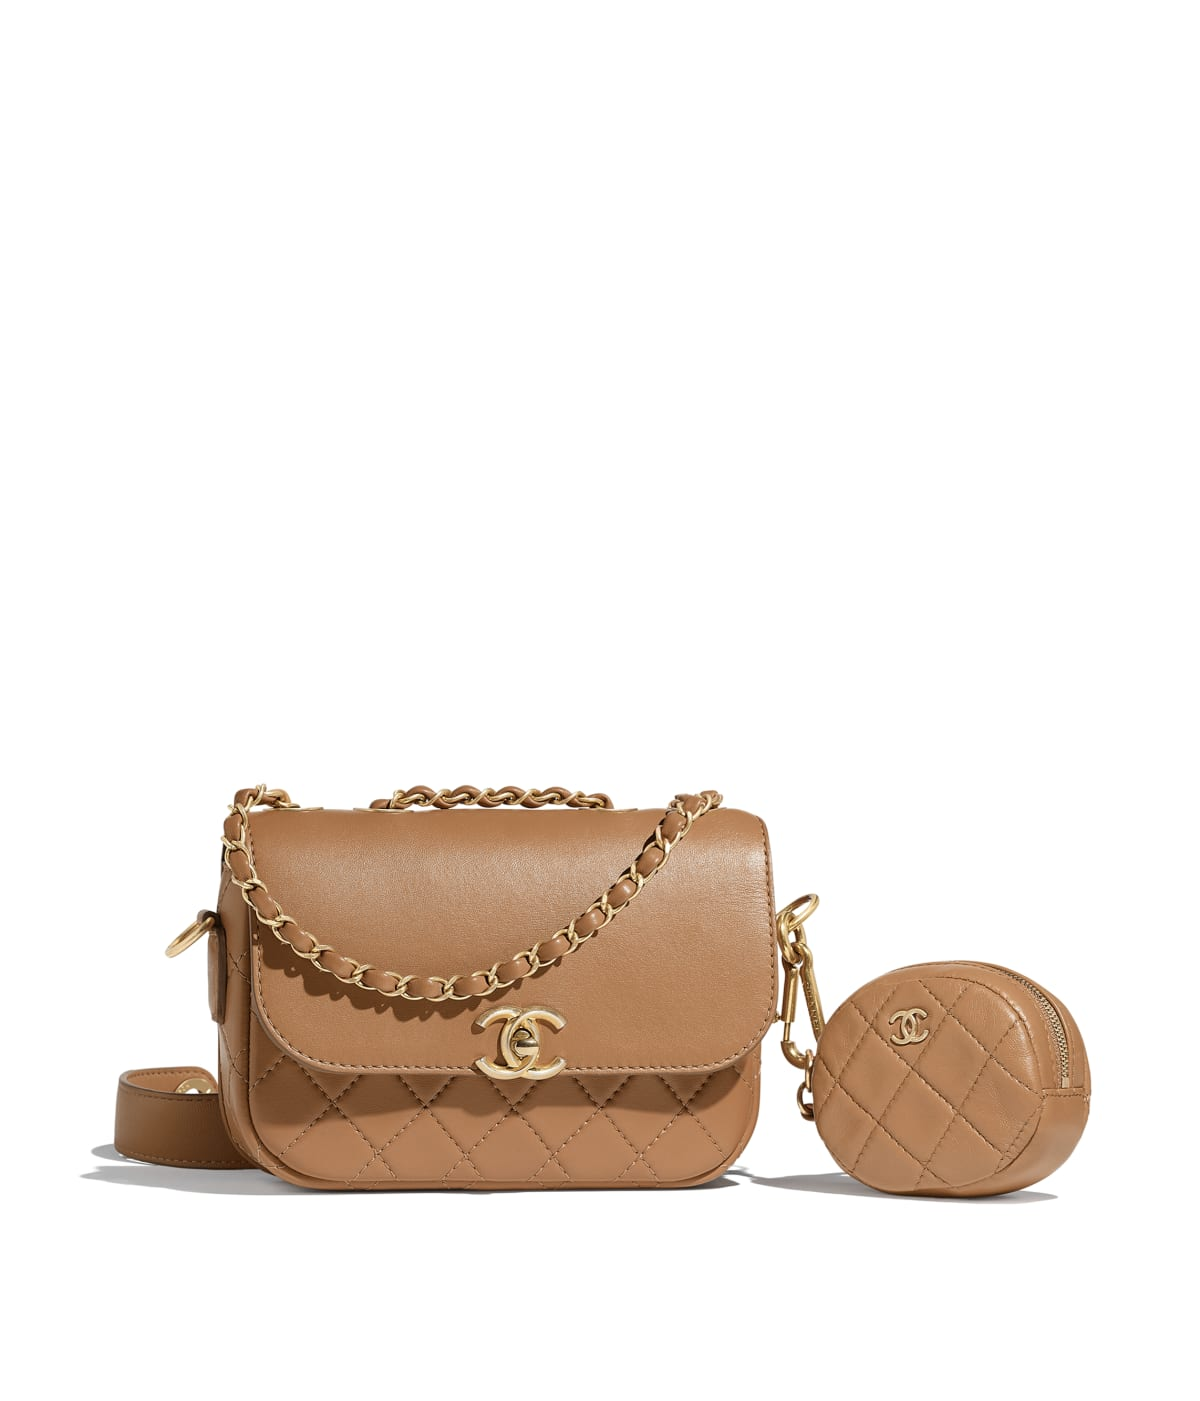 Chanel Flap Bag & Coin Purse